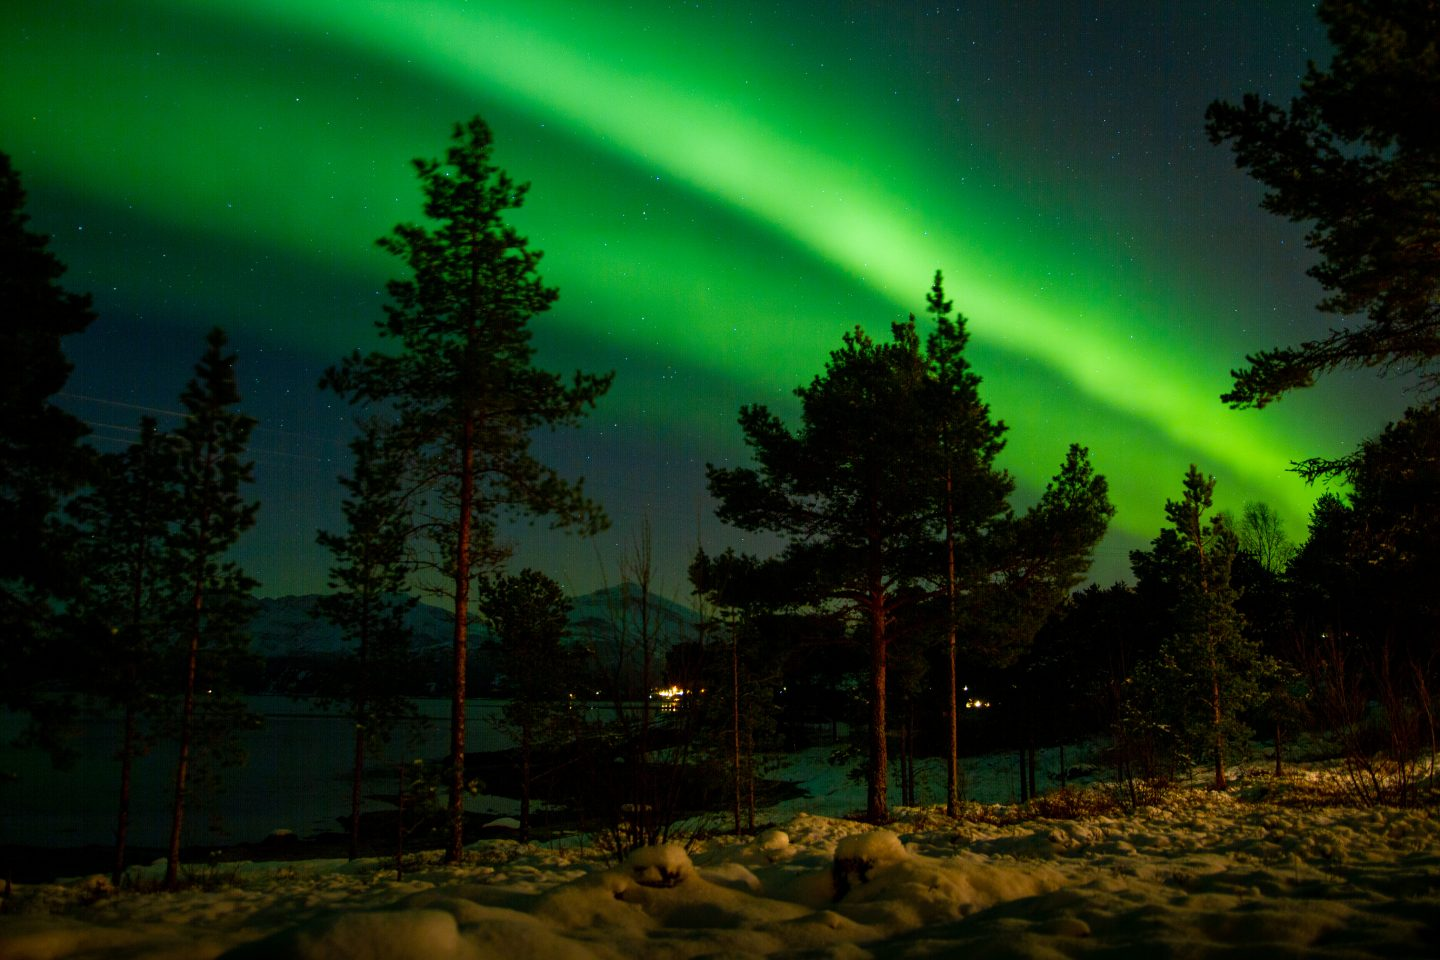 Aurora Borealis in Hamarøy, northern Norway. How to find & photograph the northern lights